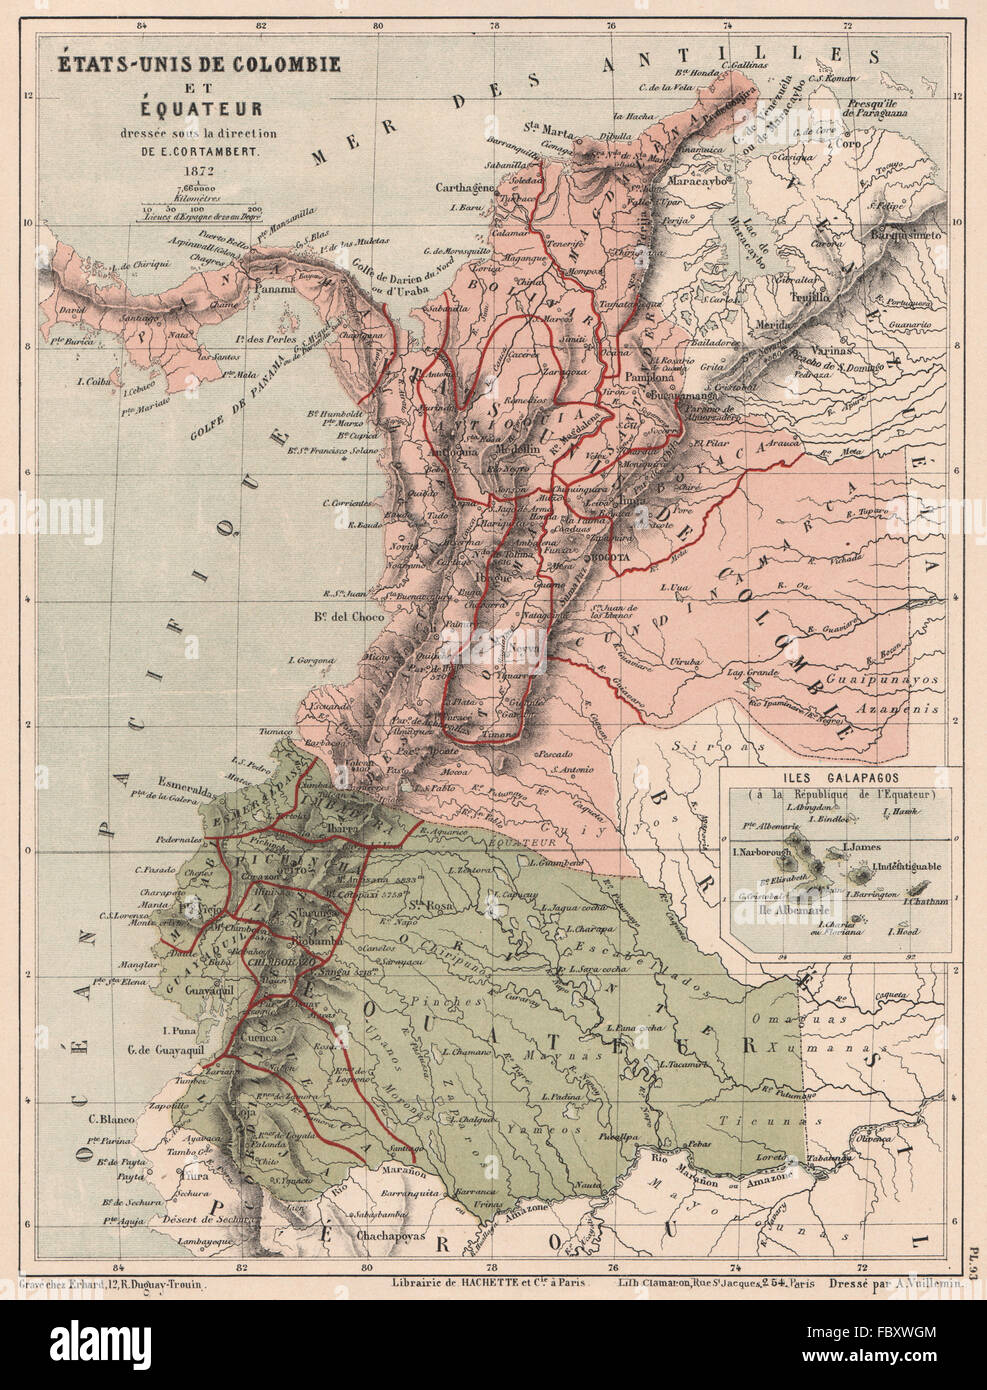 United States of Colombia & Ecuador. Inset Galapagos Islands ... on us map 1865, us map 1890, us map 1860, us map 1920, us map 1820, us map google earth, us map 1900, us map 1870, us map points of interest, us map 1850, us map 1910, us map 8.5 x 11, us map 1840, us map 13 colonies, us map 1790, us map mo, us map 1830, us map oceans, us map 1800, us map by population,